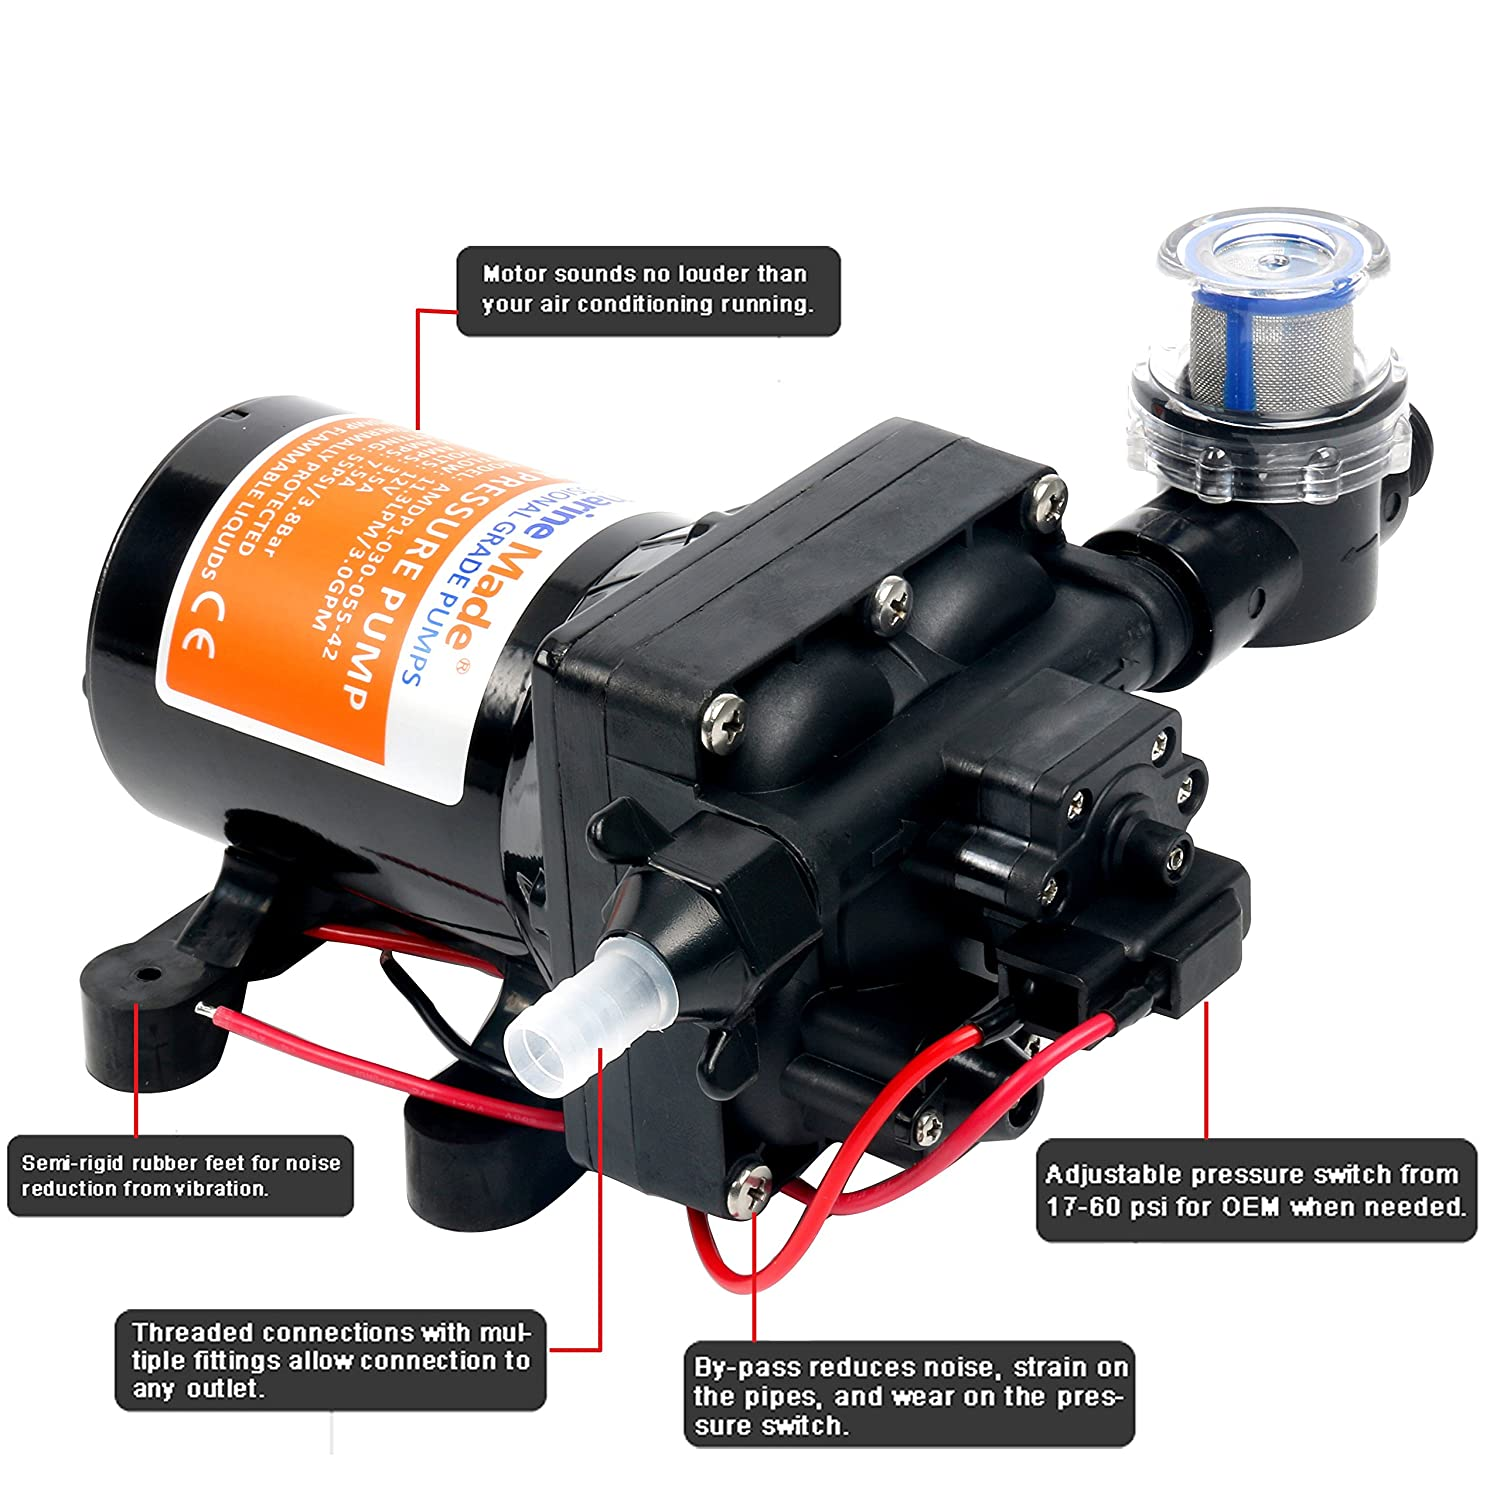 Amarine made 42 series washdown water pressure diaphragm pump w amarine made 42 series washdown water pressure diaphragm pump wvariable flow 12v 30gpm 55psi water pressure pumps amazon canada ccuart Images